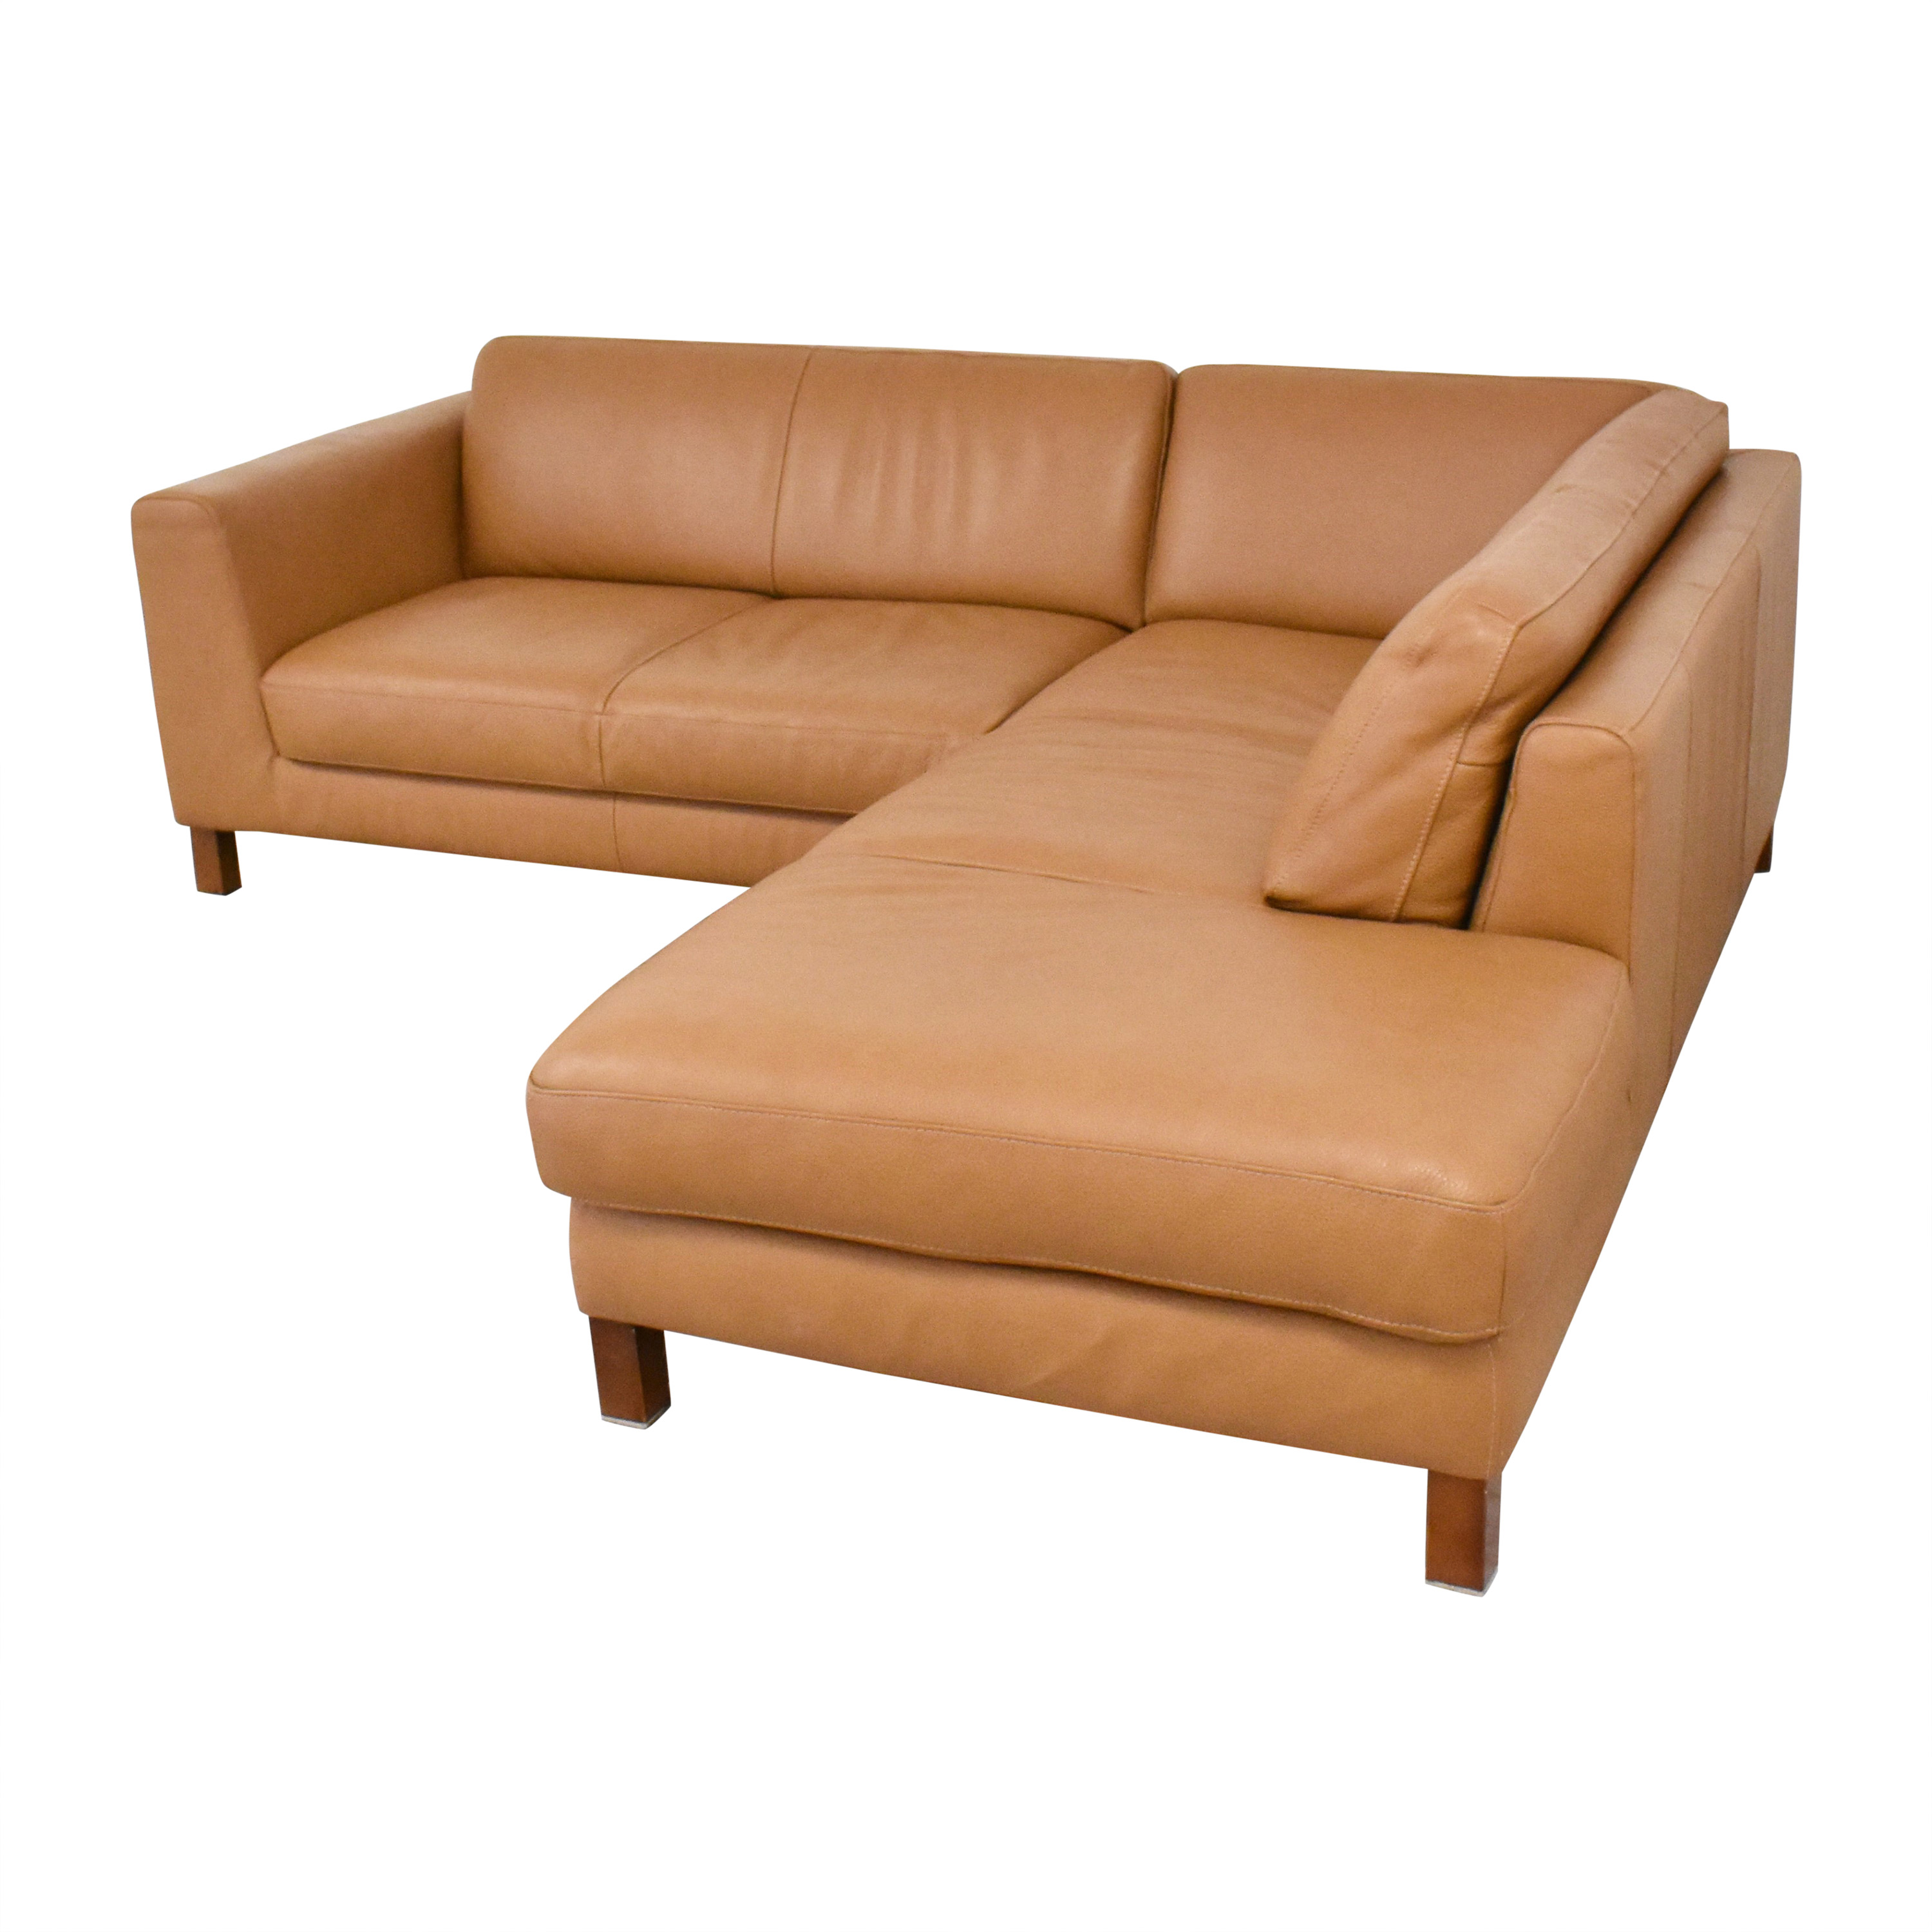 buy Bloomingdale's Sectional Sofa with Chaise Bloomingdale's Sofas